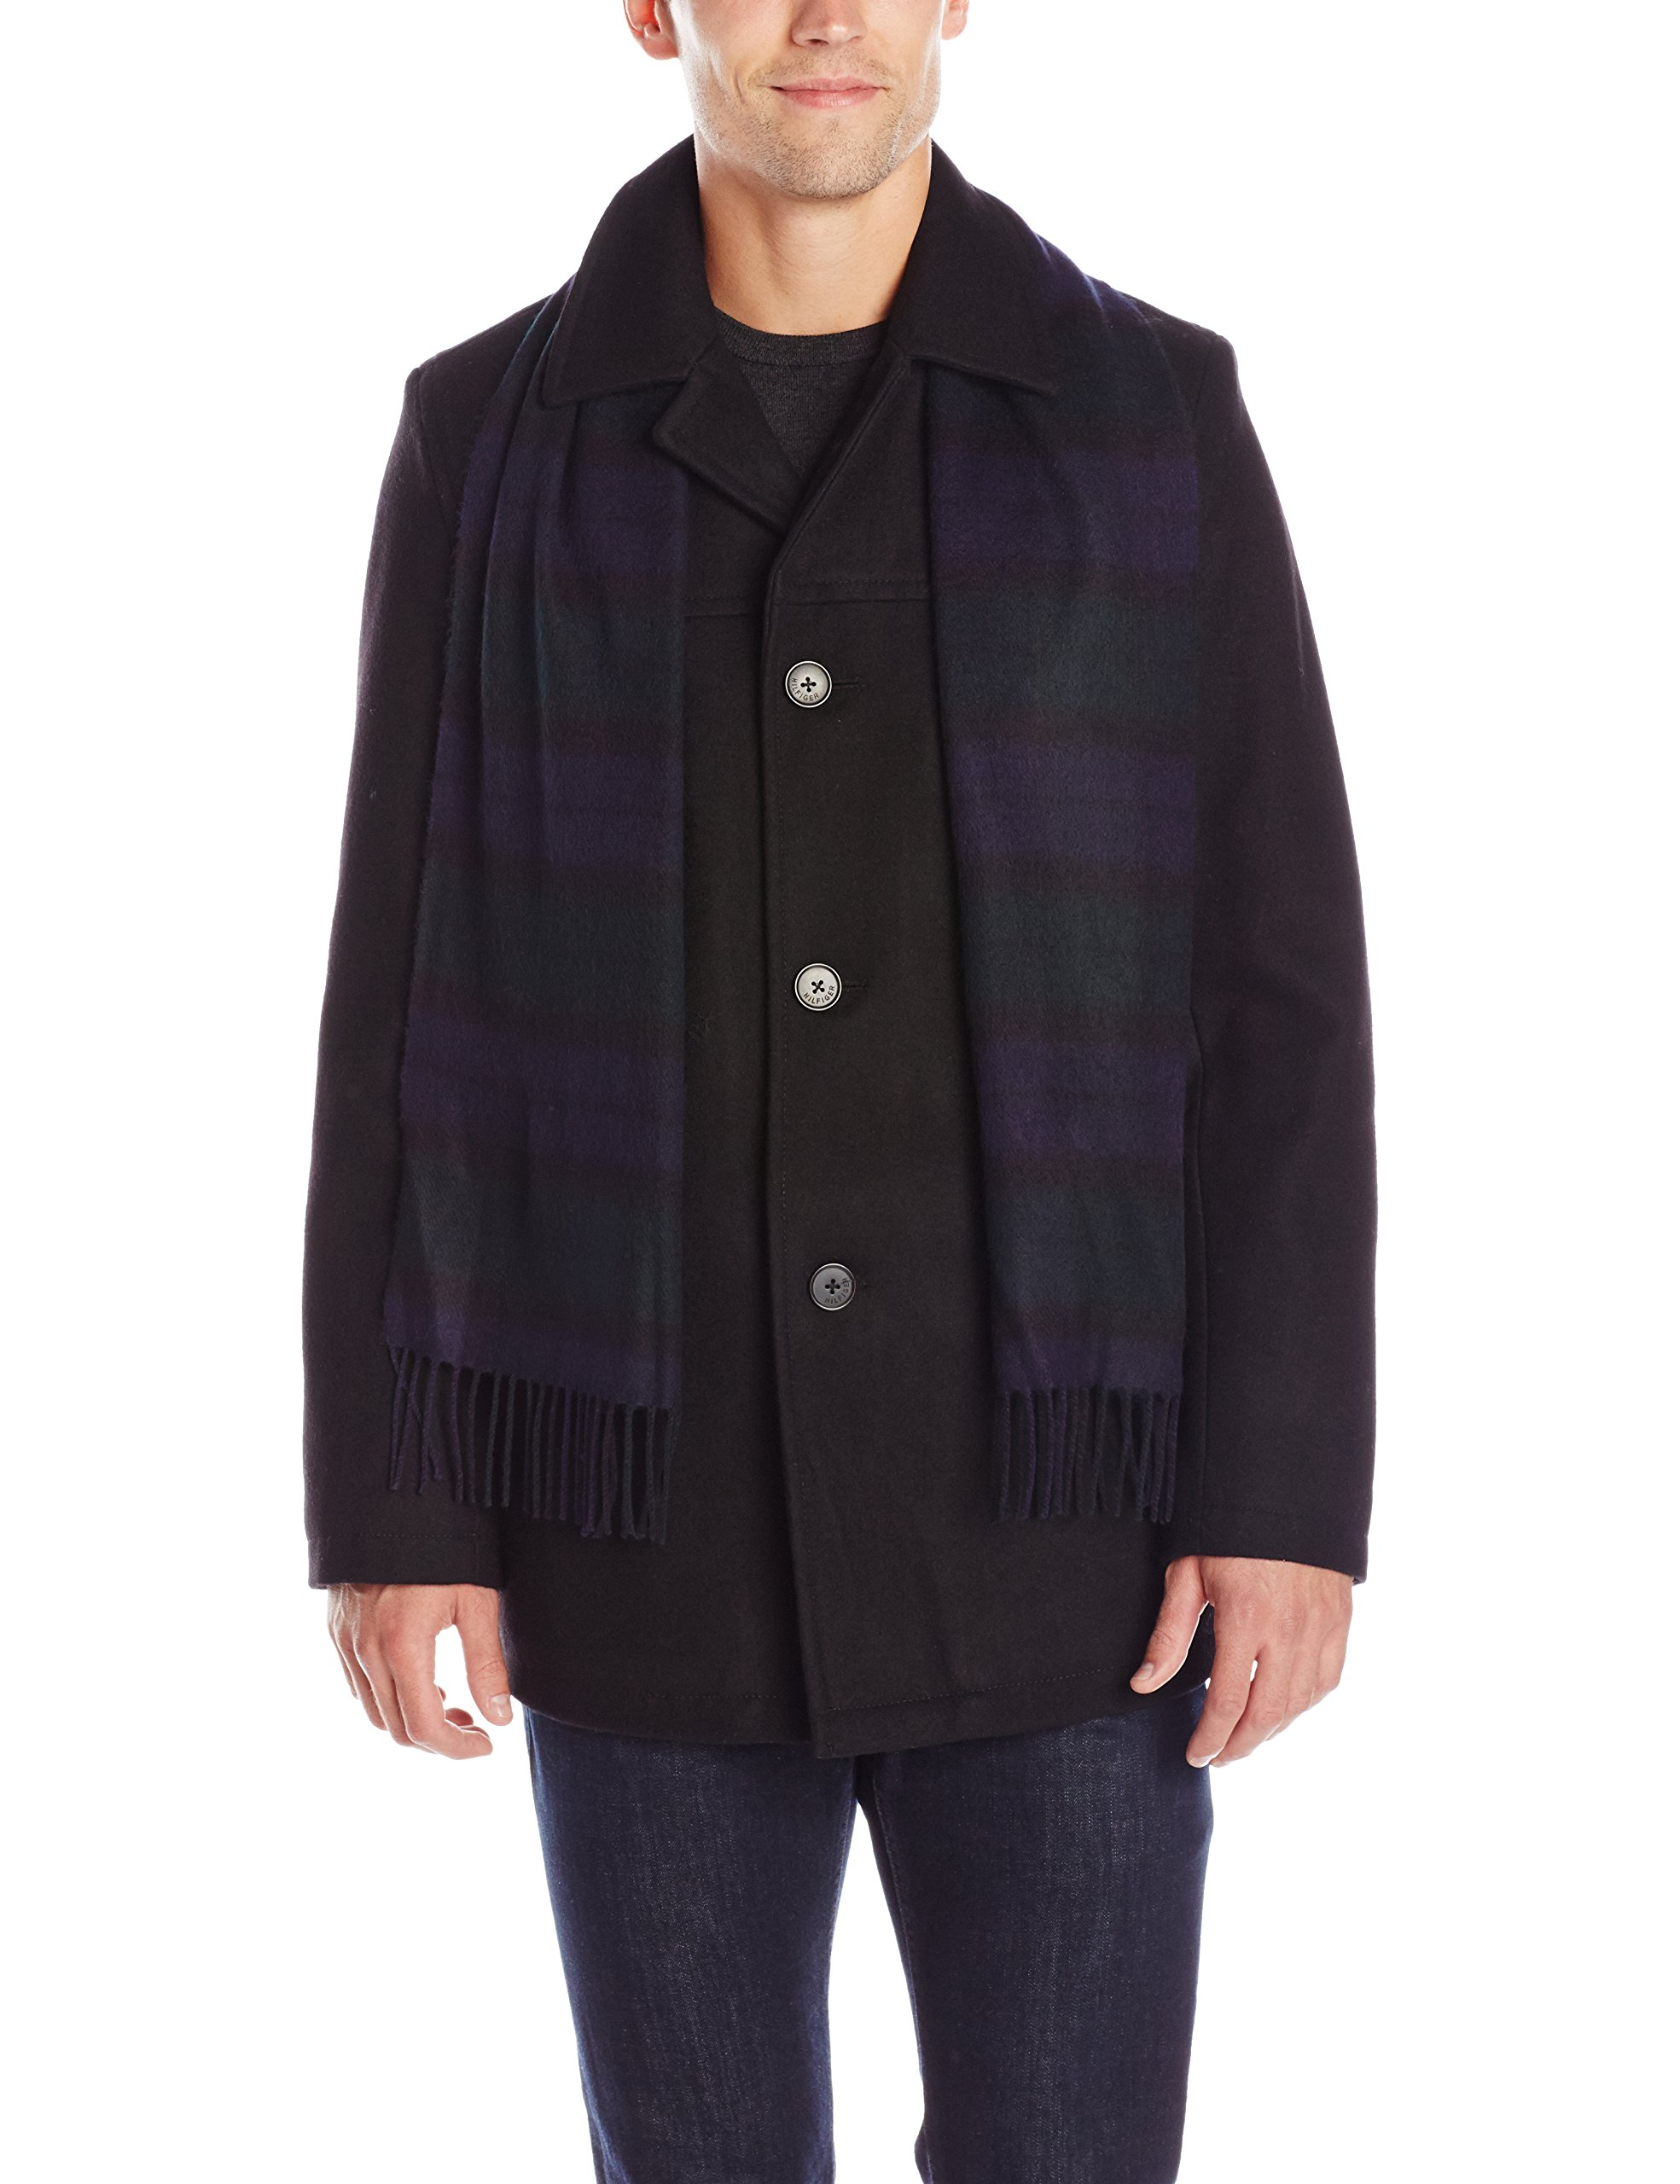 Tommy Hilfiger Men's Wool Melton Walking Coat with Detachable Scarf, Black, X-Large by Tommy Hilfiger